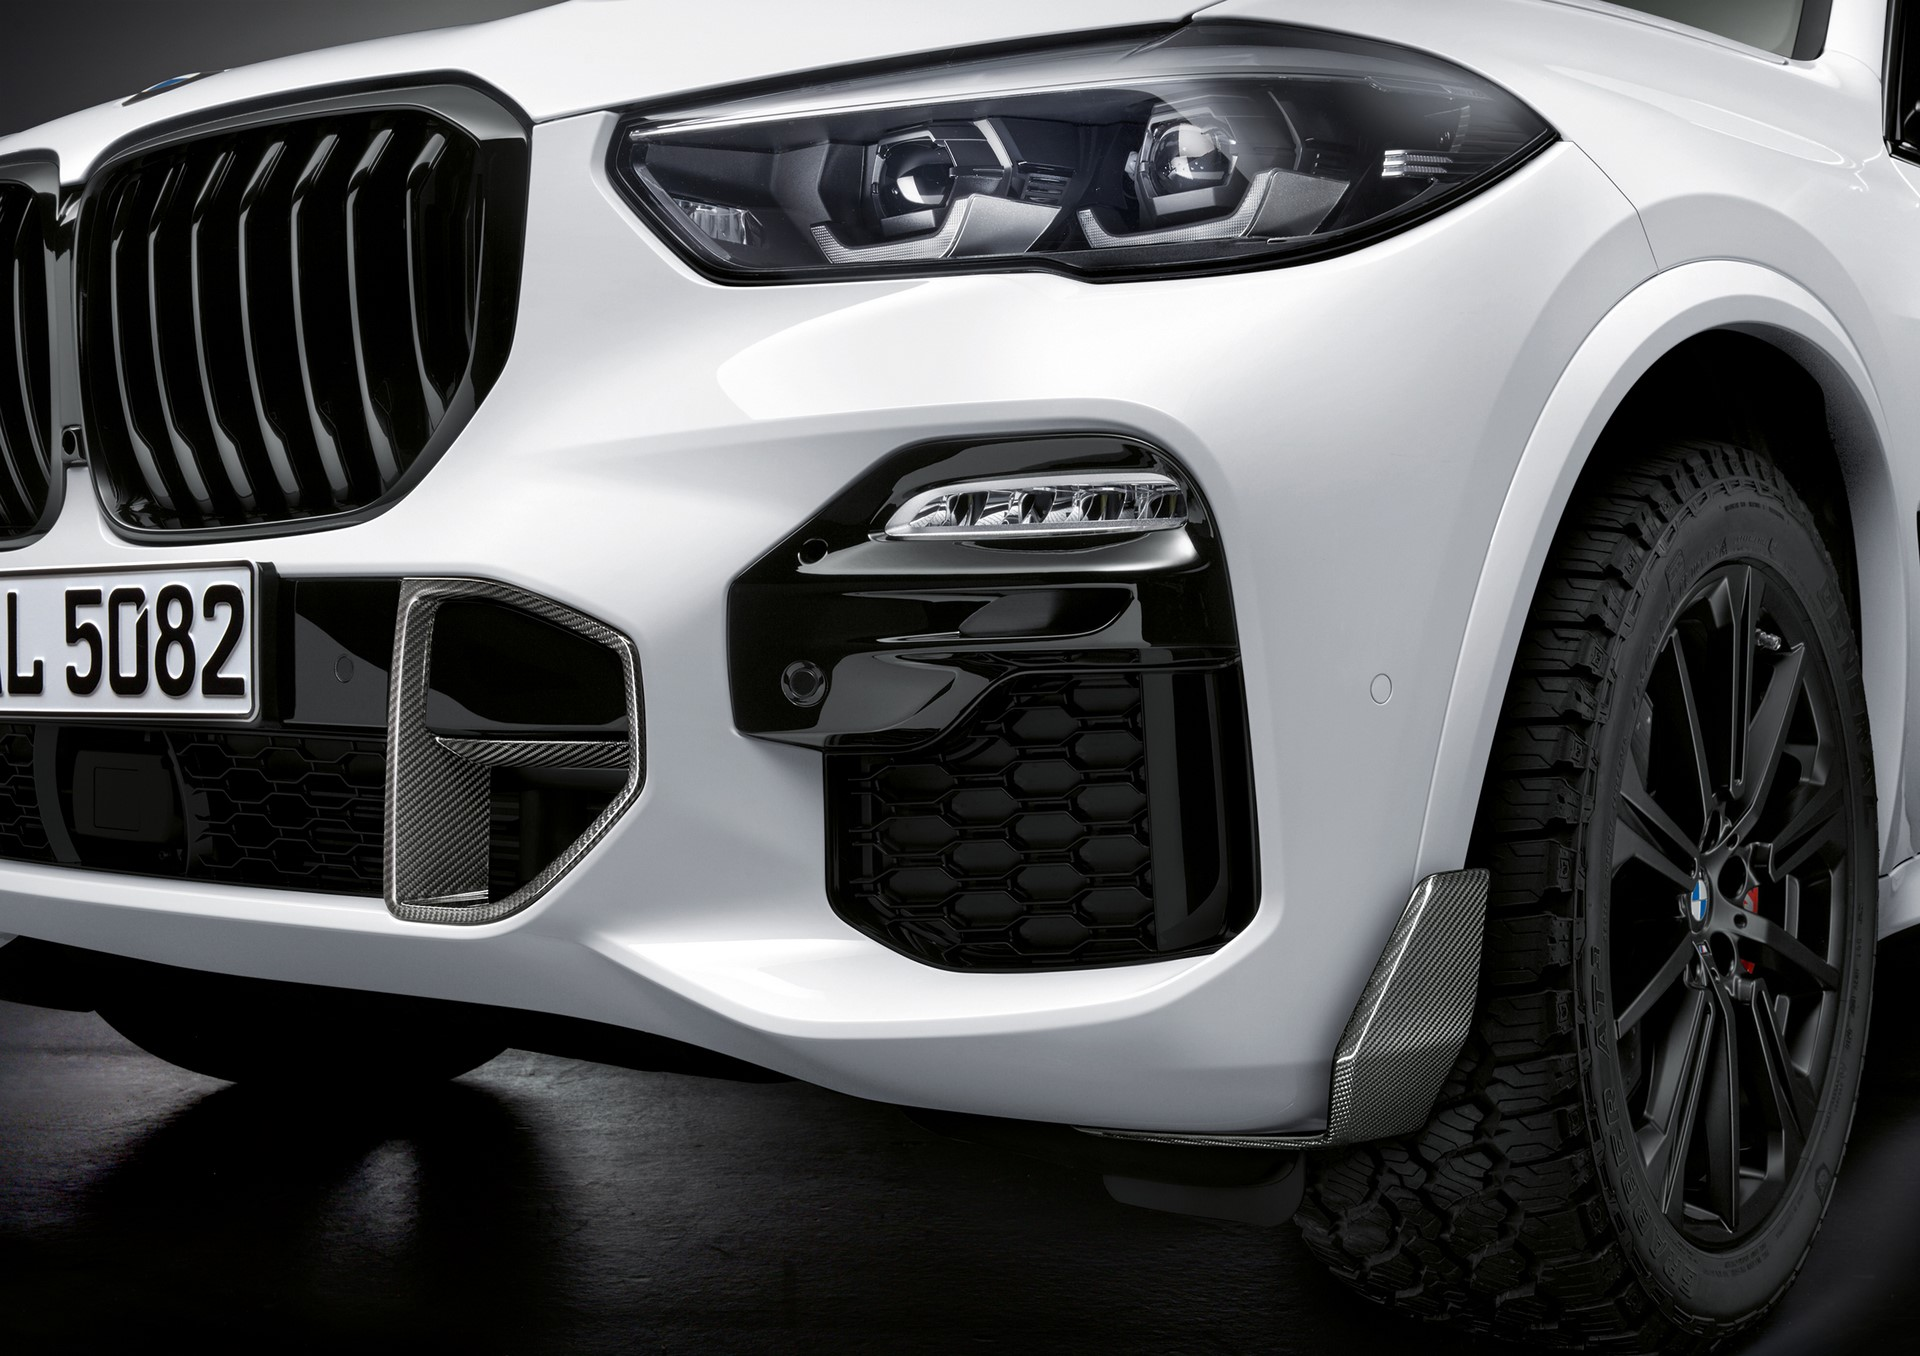 BMW X5 with M Performance parts (5)